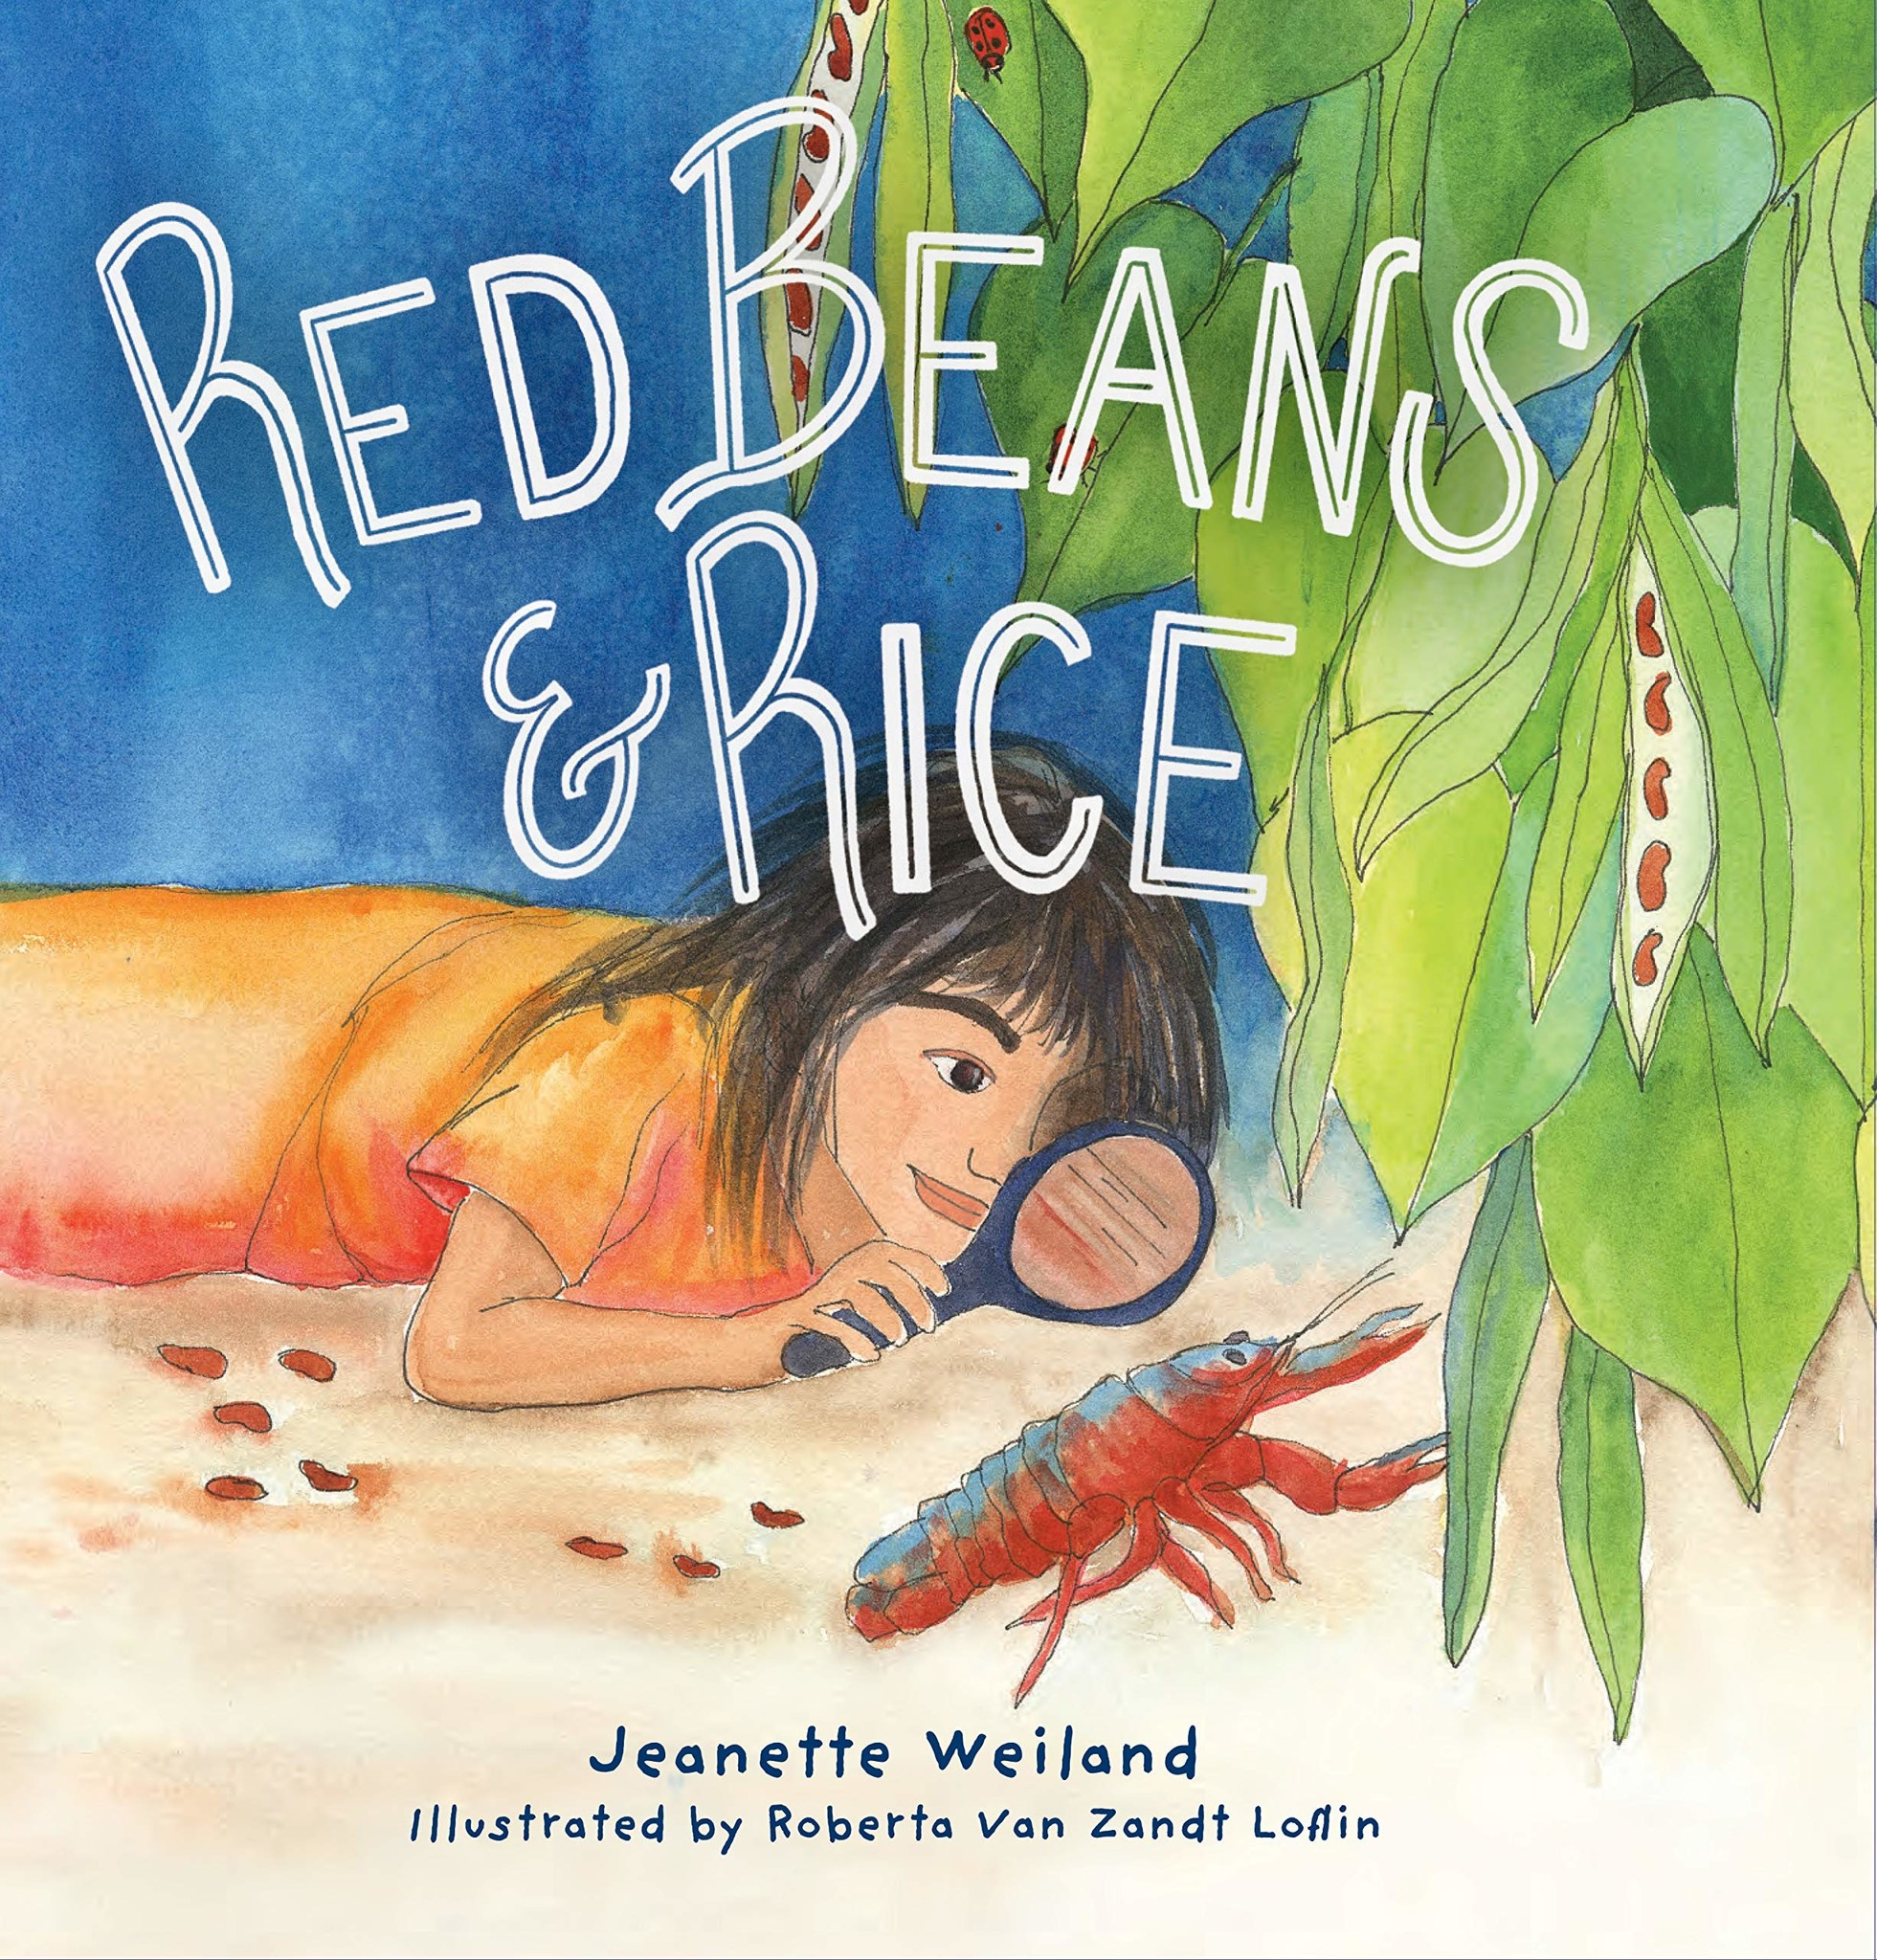 Books Red Beans & Rice (Hardcover)